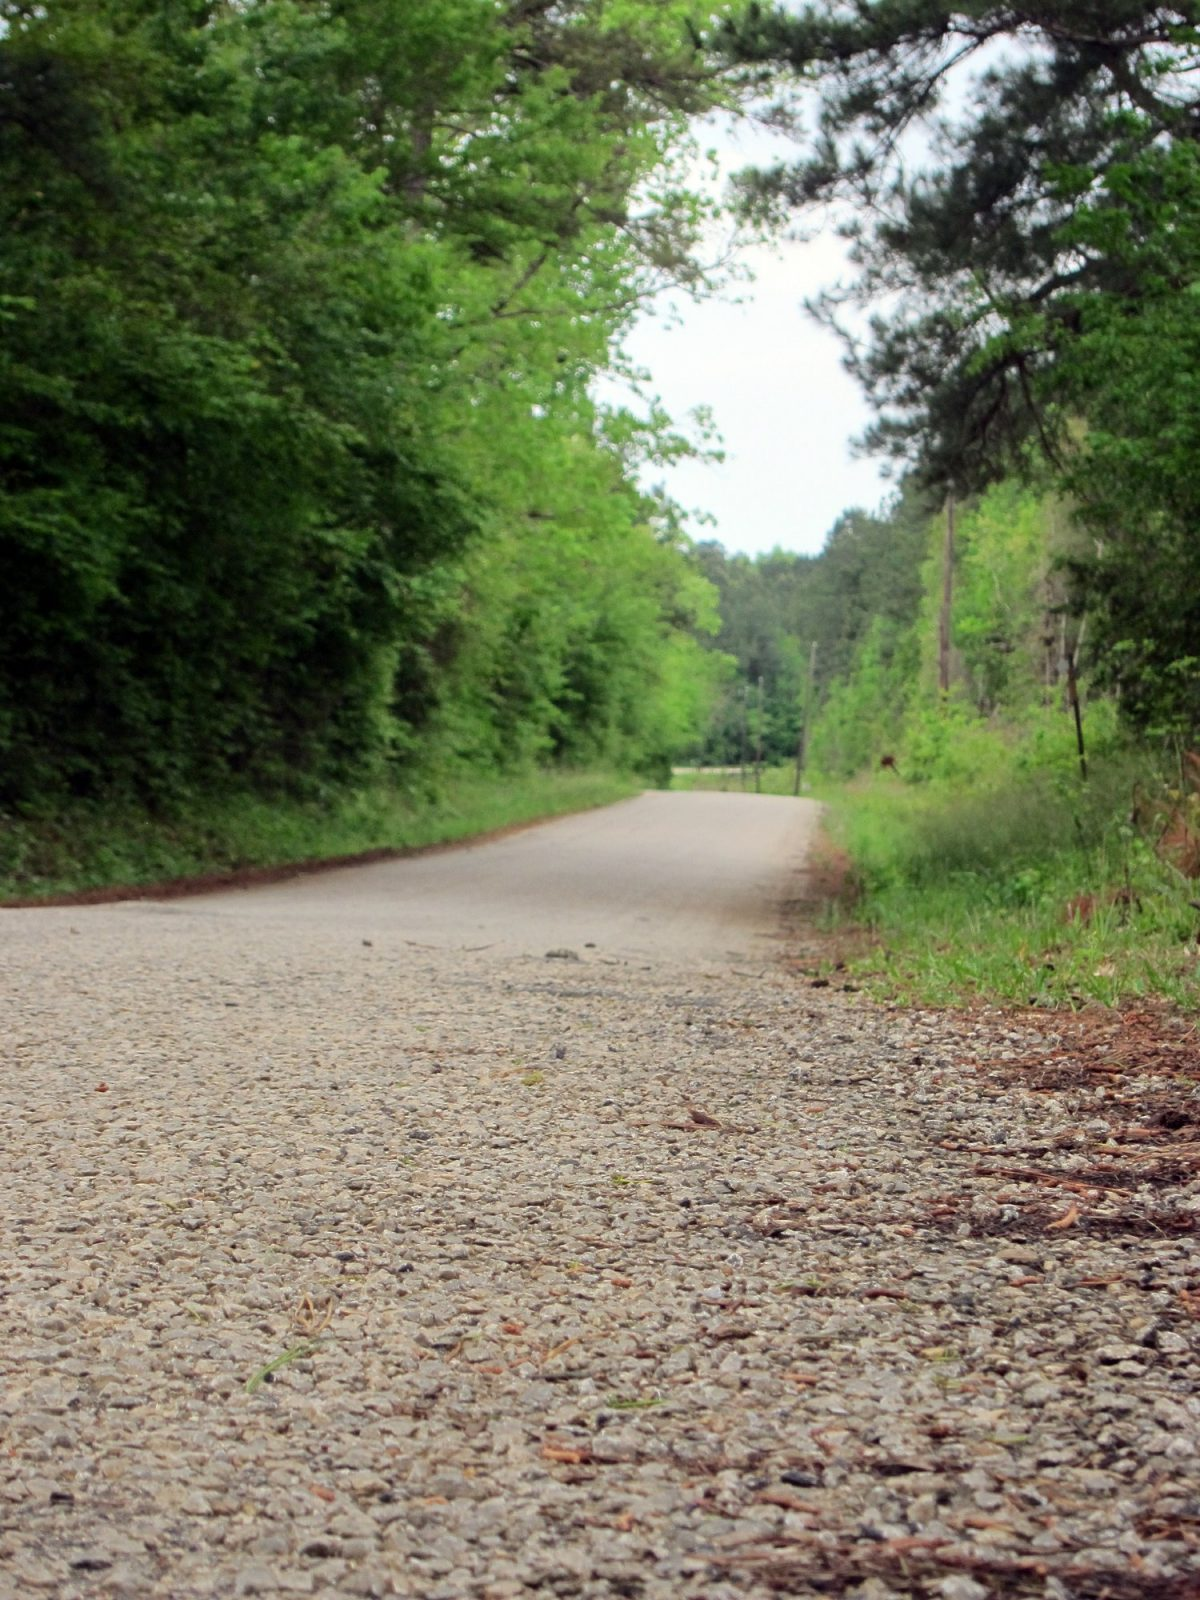 A section of Huff Creek Road, where James Byrd Jr. was dragged to death